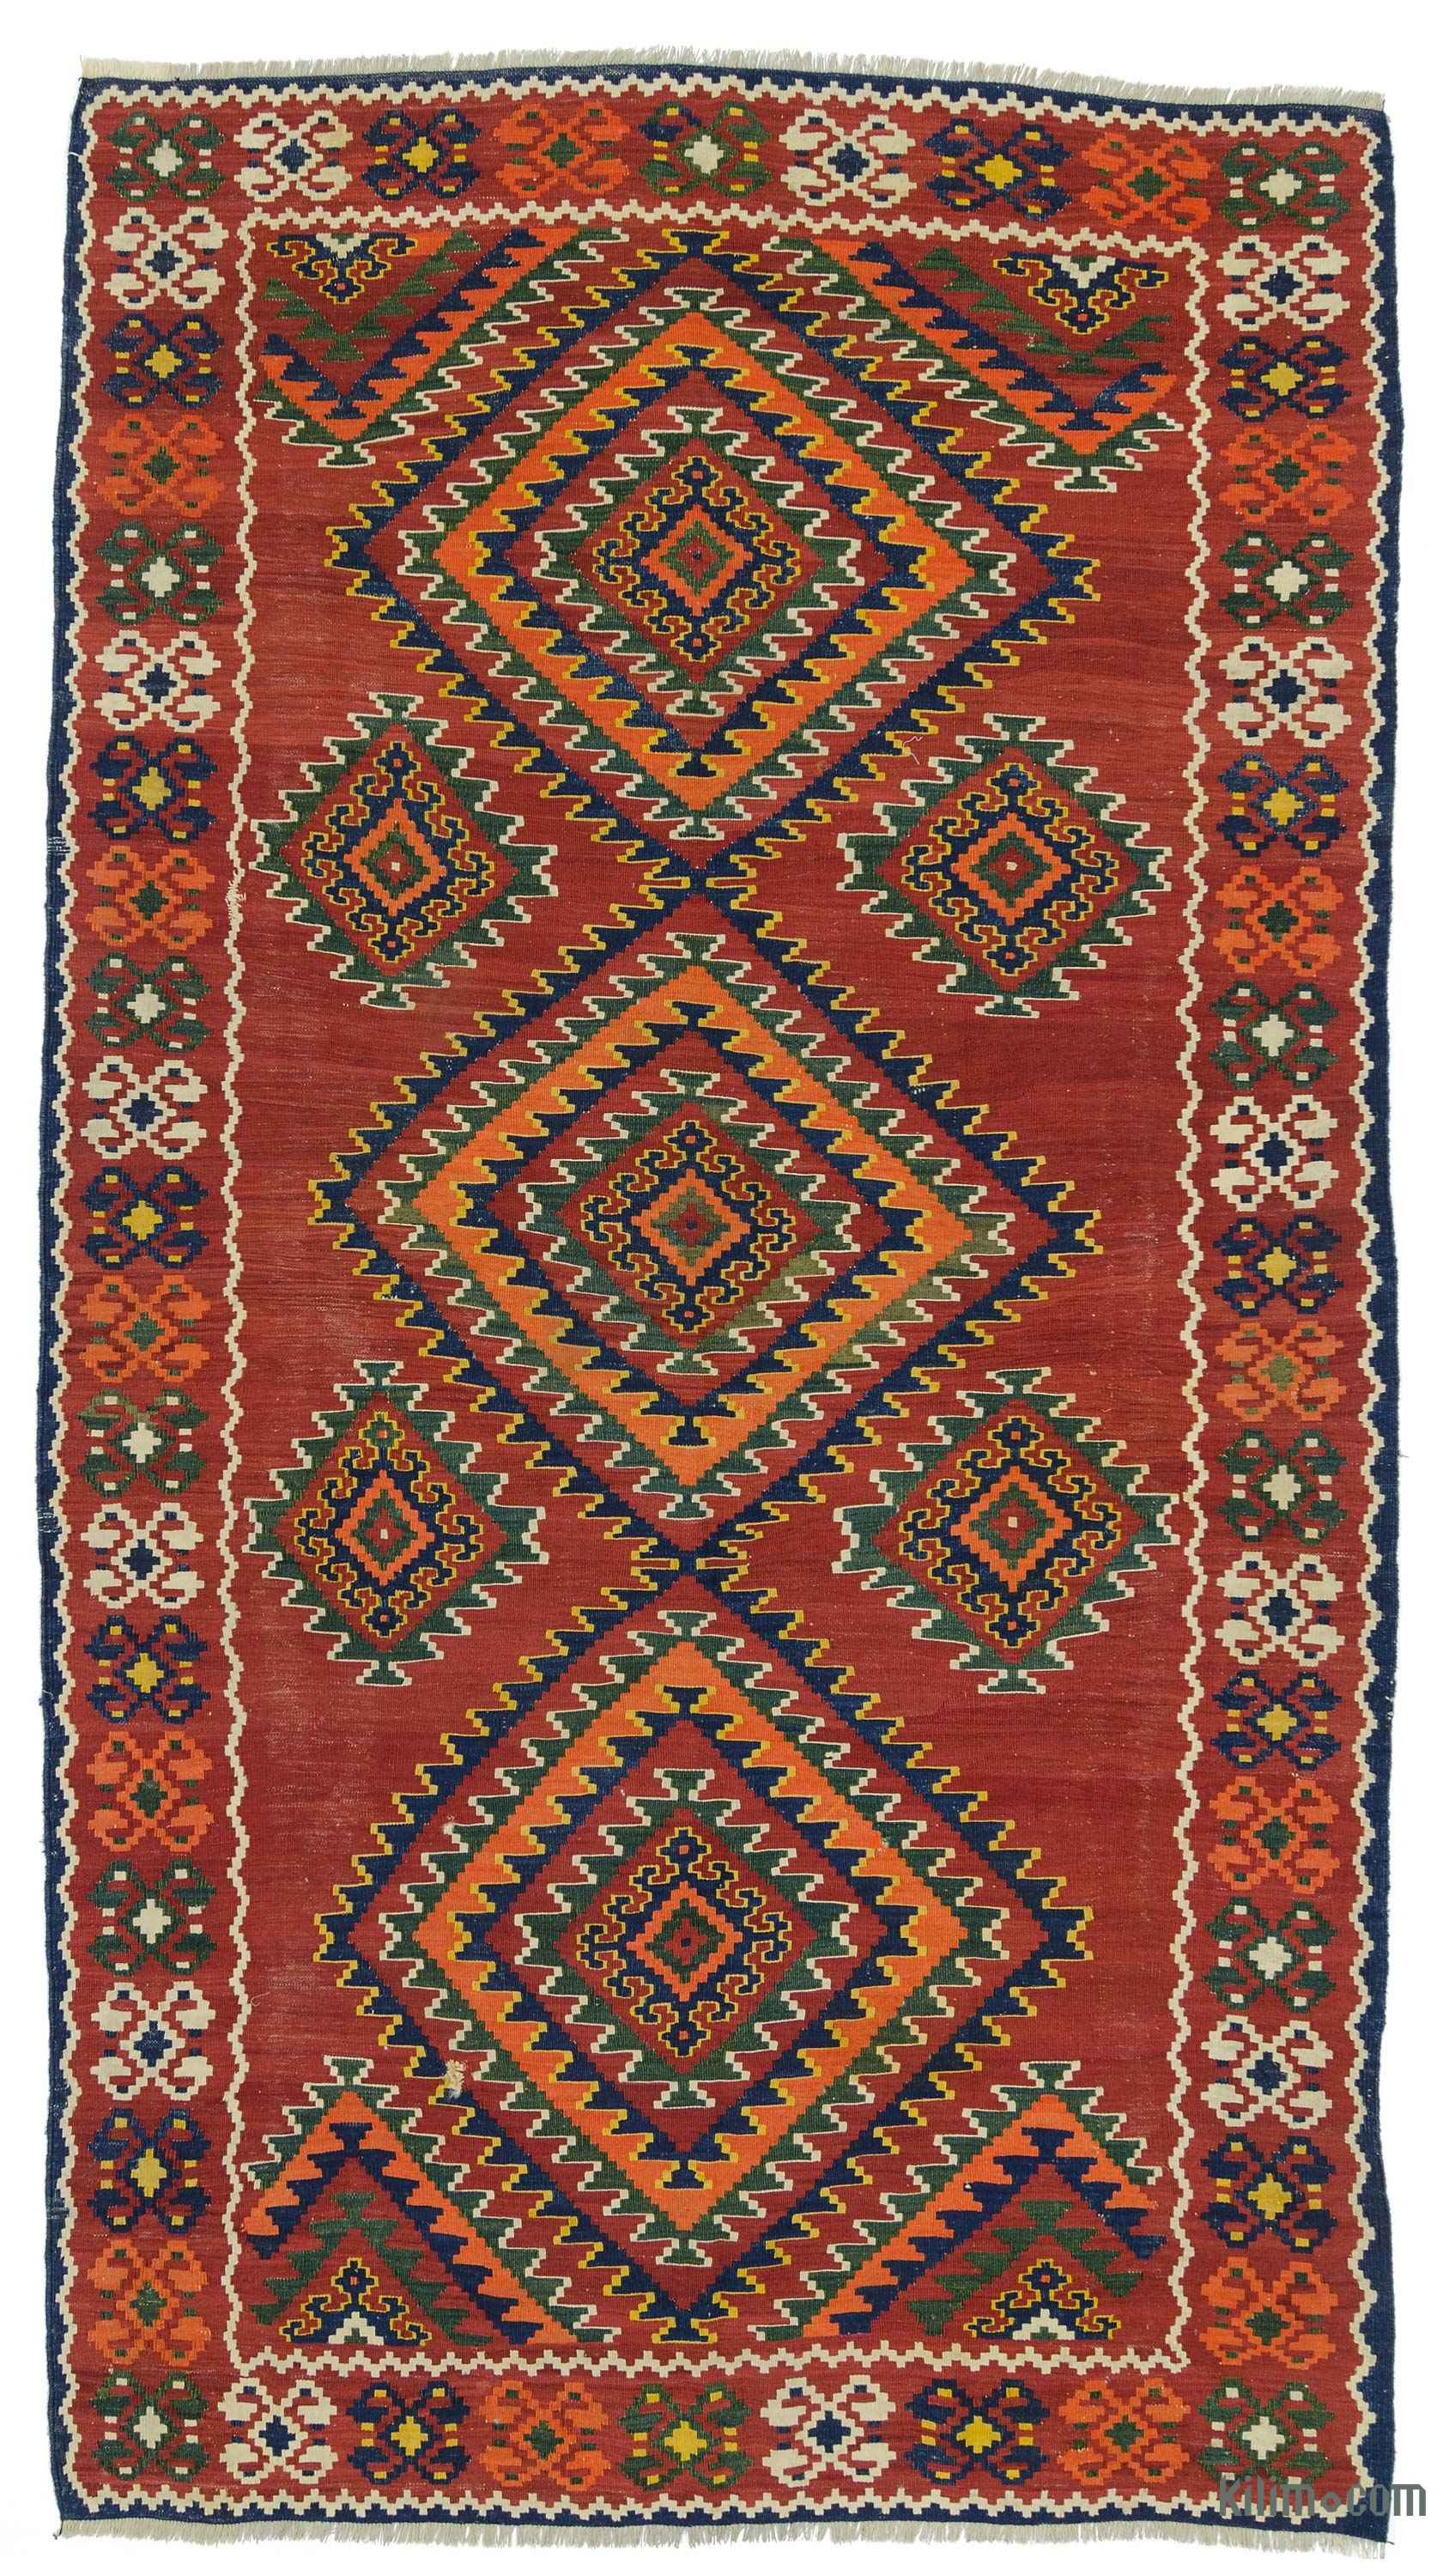 kilims rugs antique kilim rugs MCLDWZH